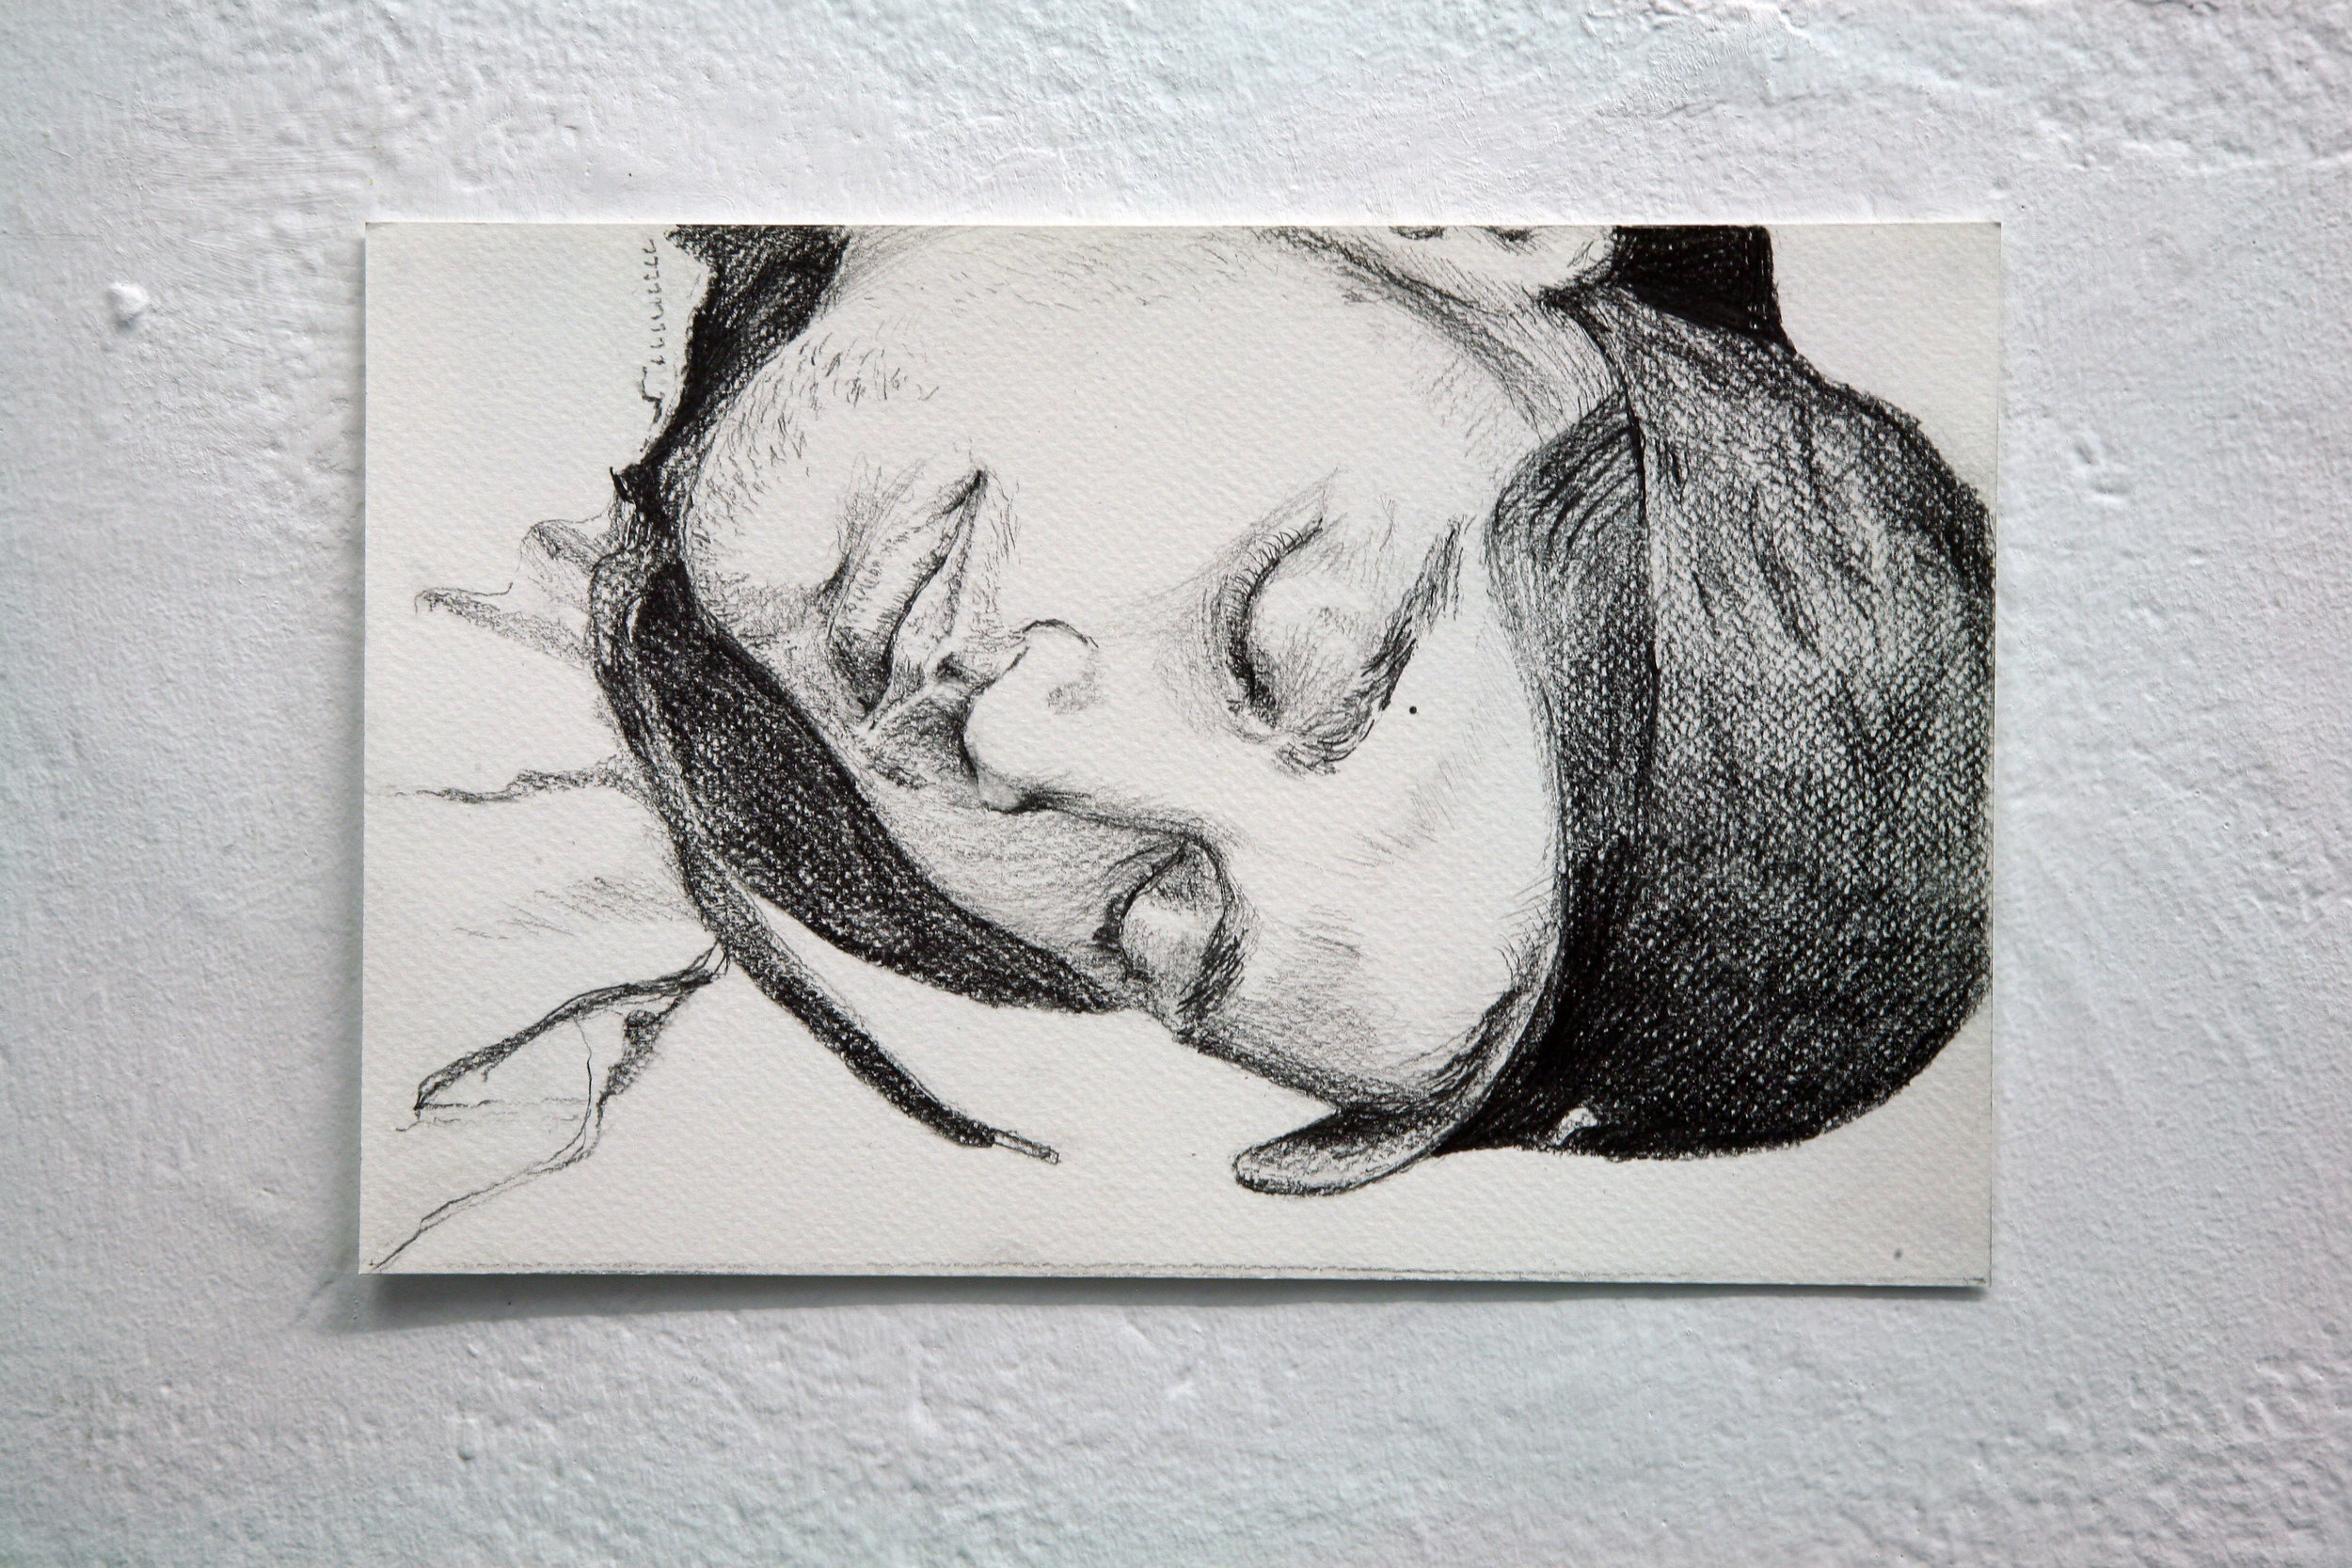 Artist Claire Hooper's sketch work- The Blessing (2007/ 2008).